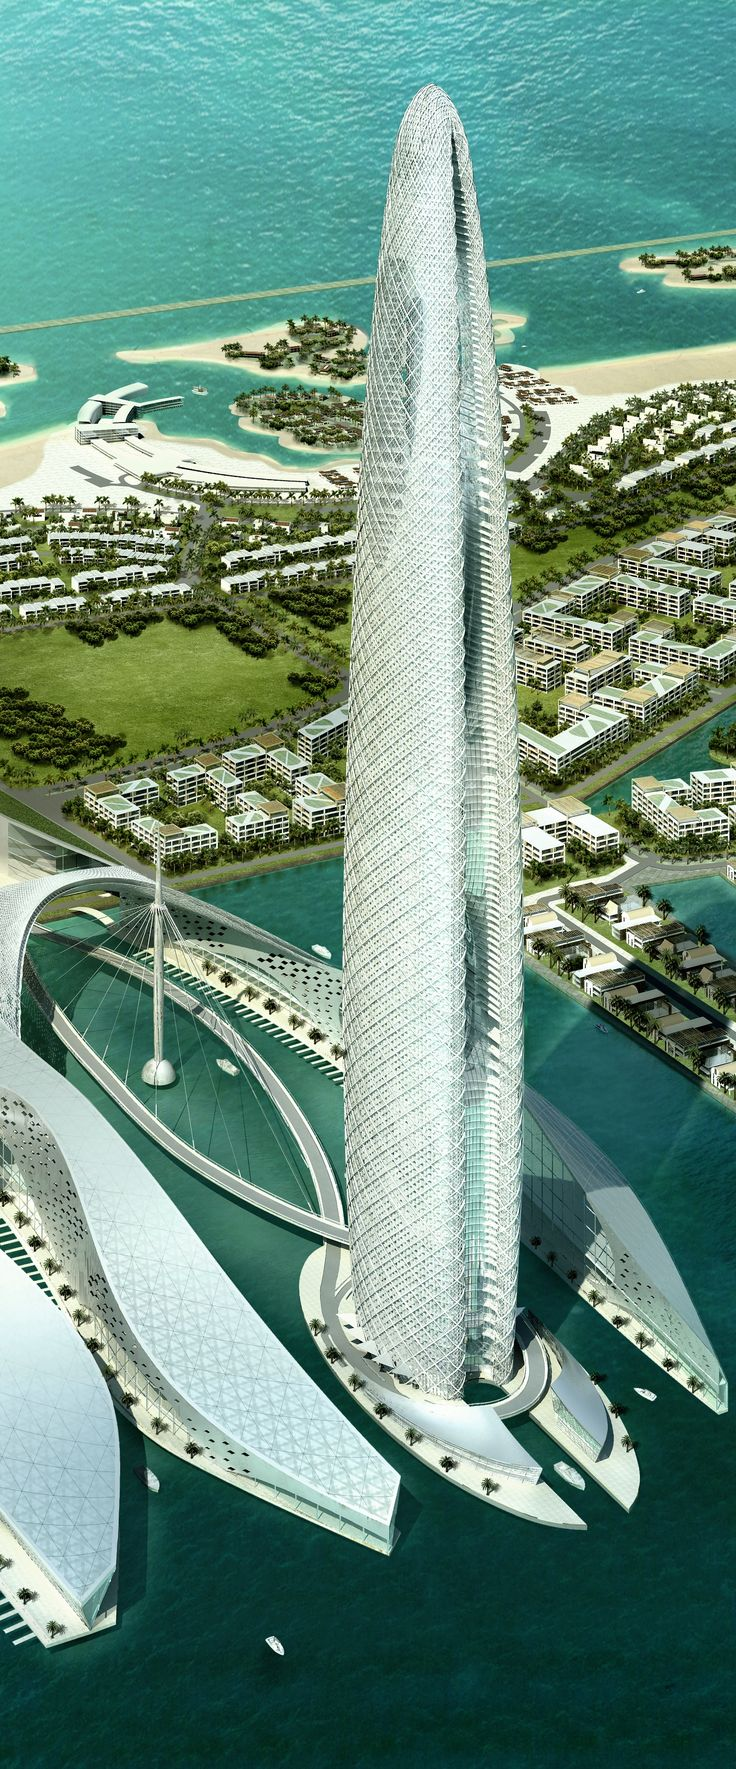 Lulu Island Tower, Abu Dhabi, UAE designed by Skidmore, Owings & Merrill (SOM) Architects :: 75 floors, height 400m Architecture